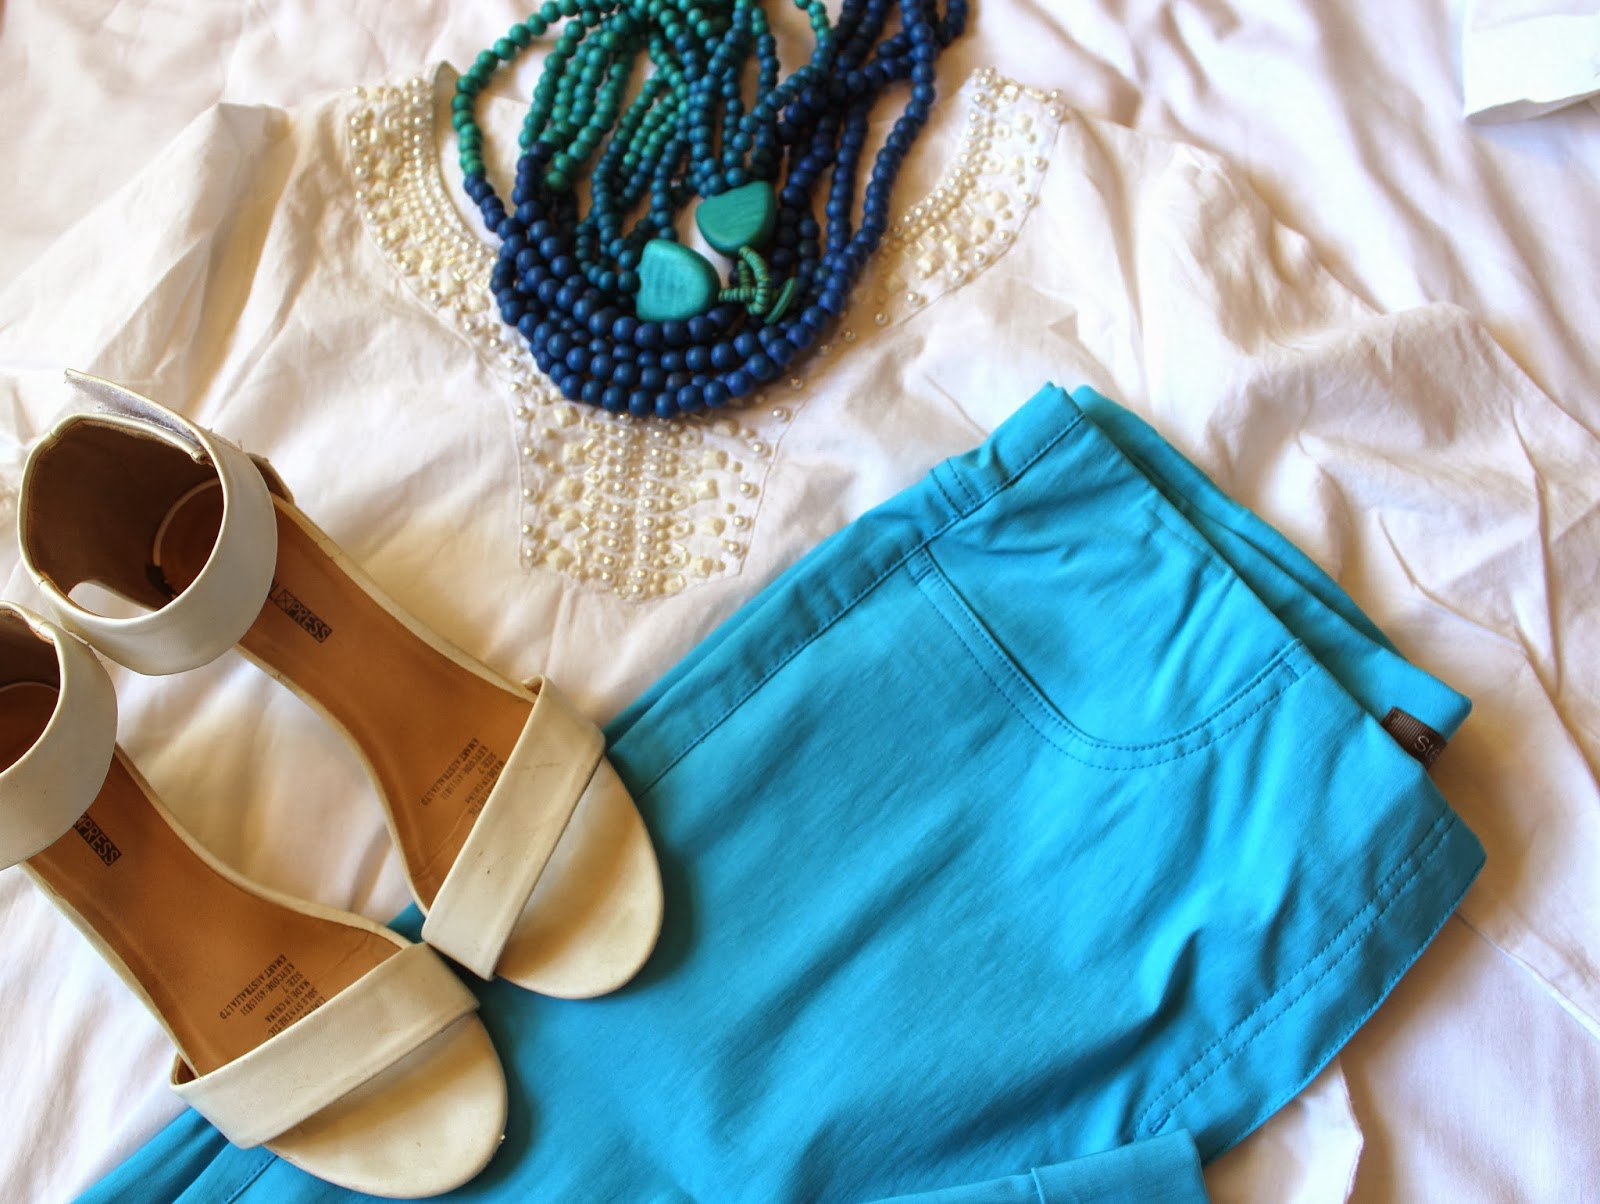 Coastal styling and craft ideas desire empire - What I Love Wearing Right Now